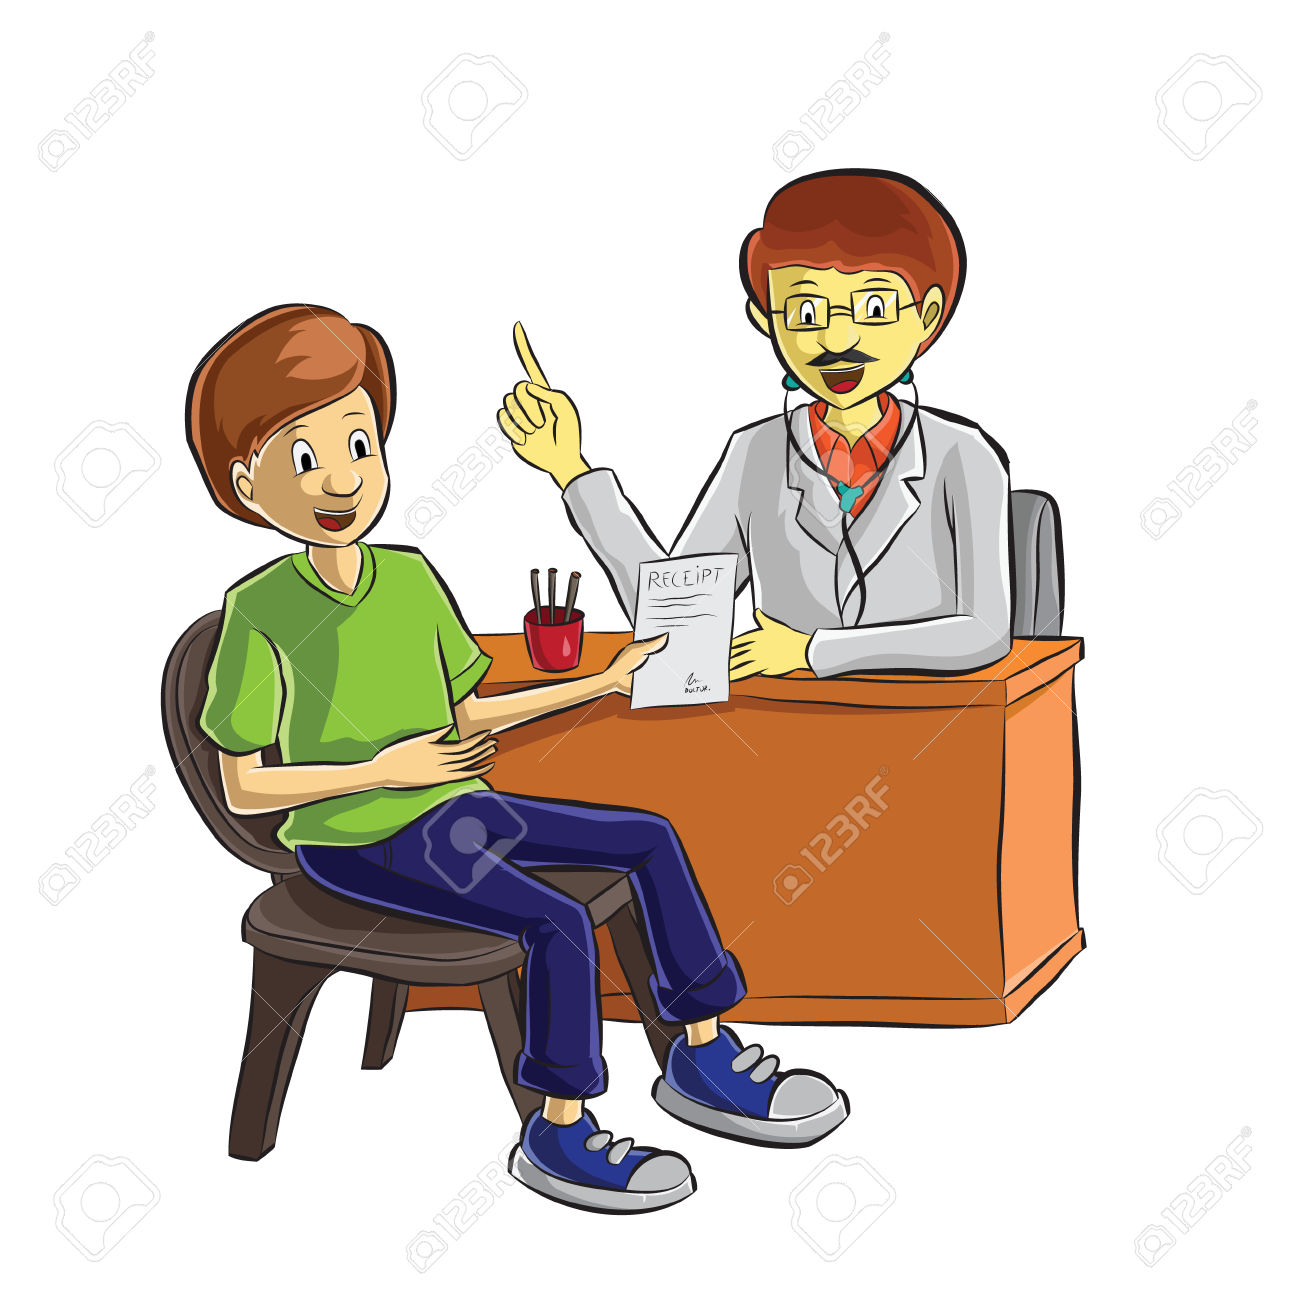 Clip Art Of Patient In The Office